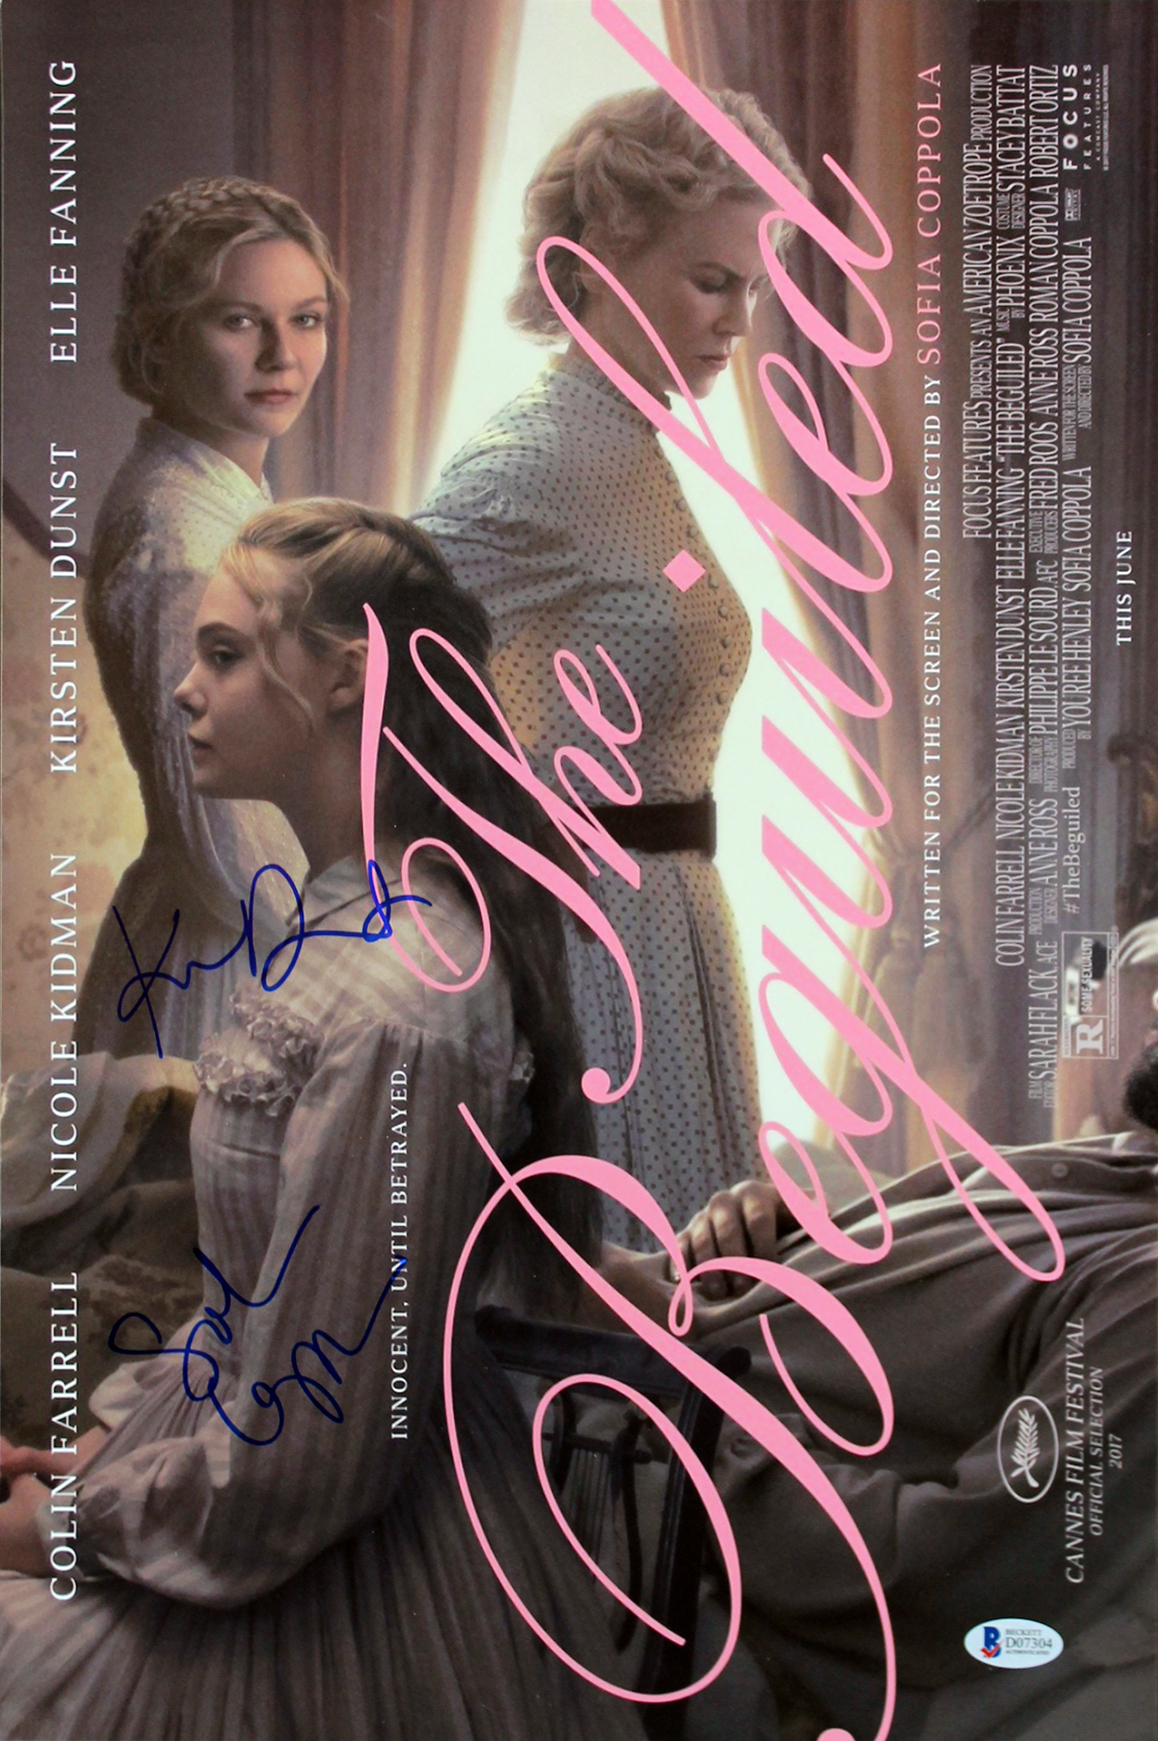 Kirsten Dunst & Sofia Coppola The Beguiled Signed 12x18 Photo BAS #D07304